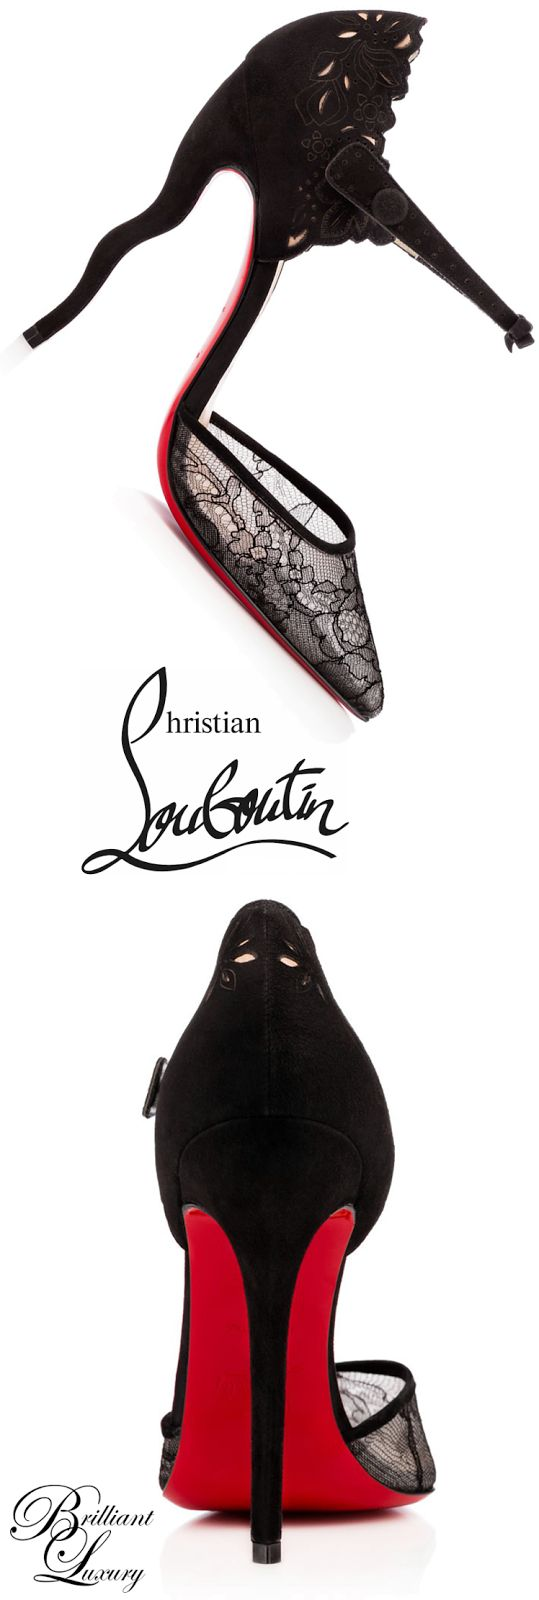 Brilliant Luxury * Christian Louboutin 'Magicadiva' 2015